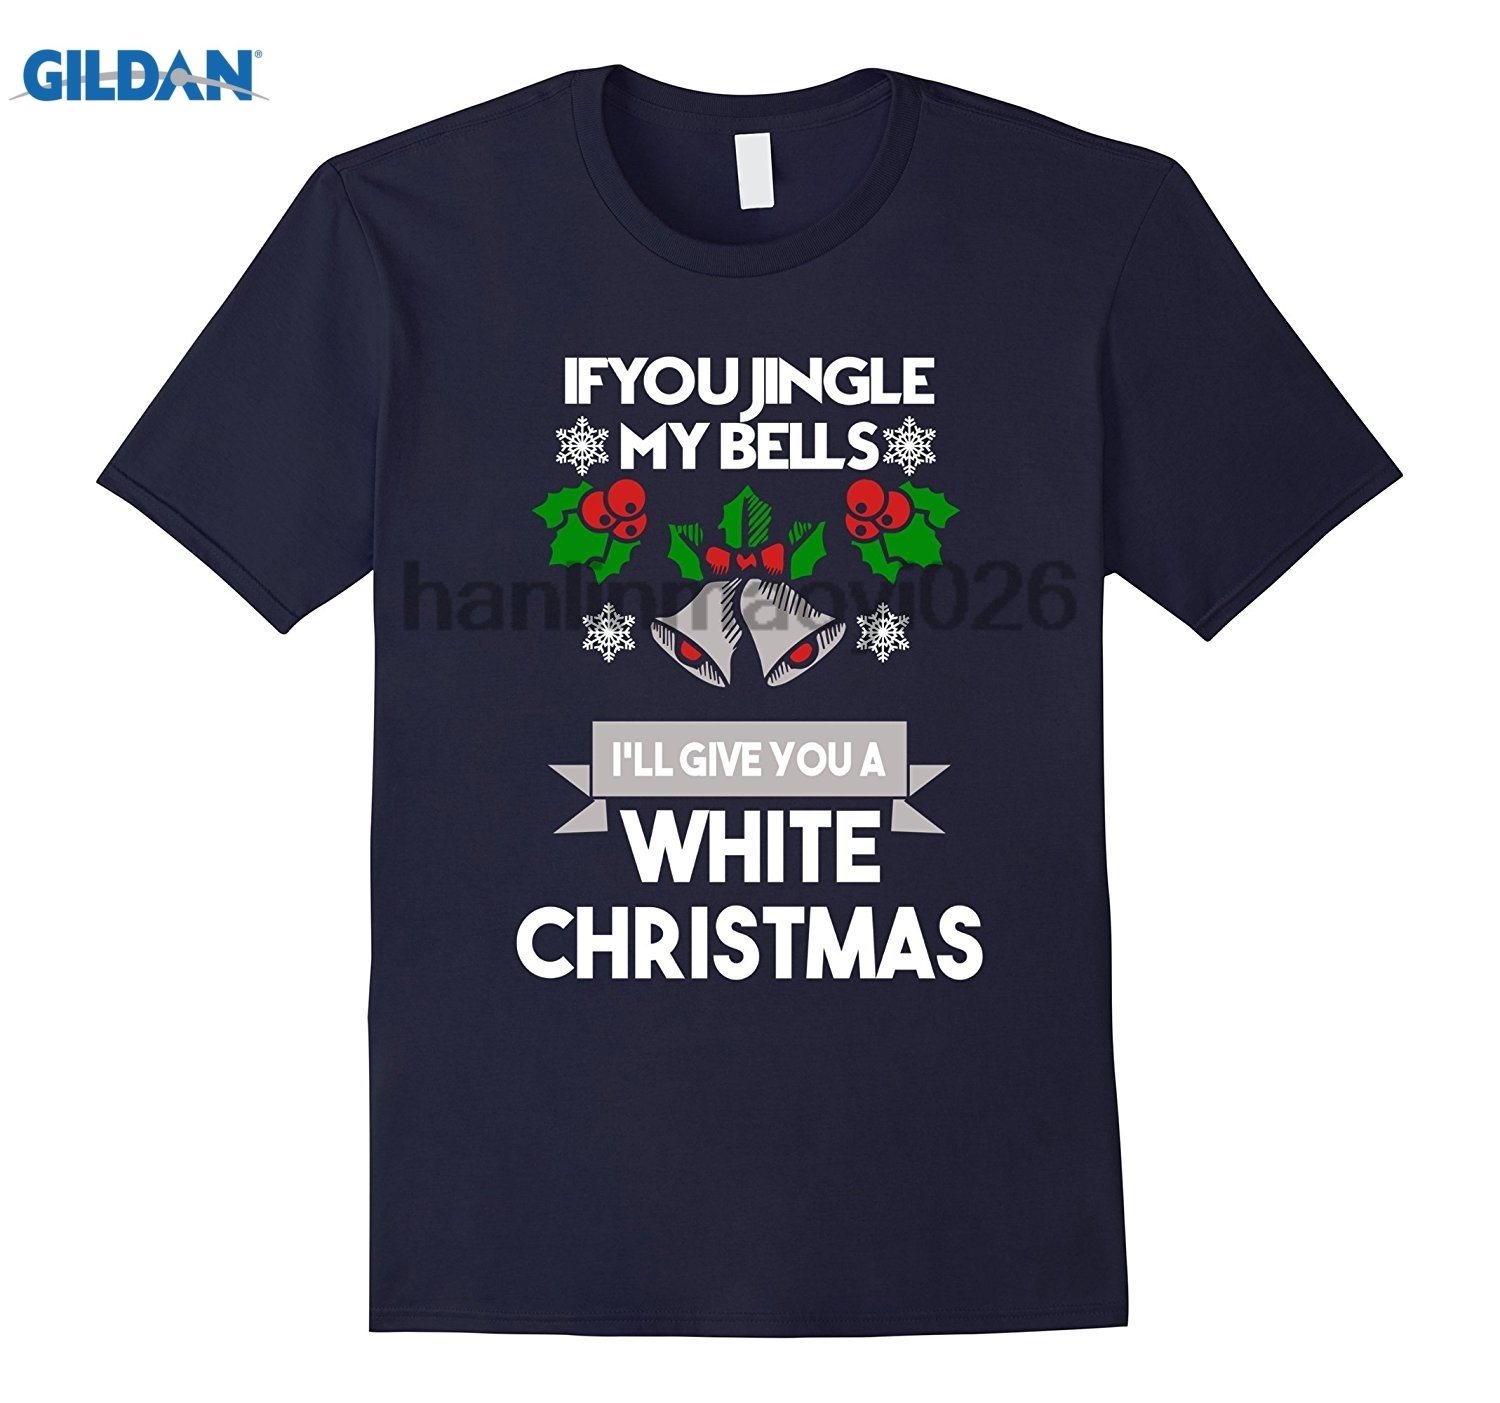 GILDAN Mens If You Jingle My Bells Ill Give You A White Christmas TShir